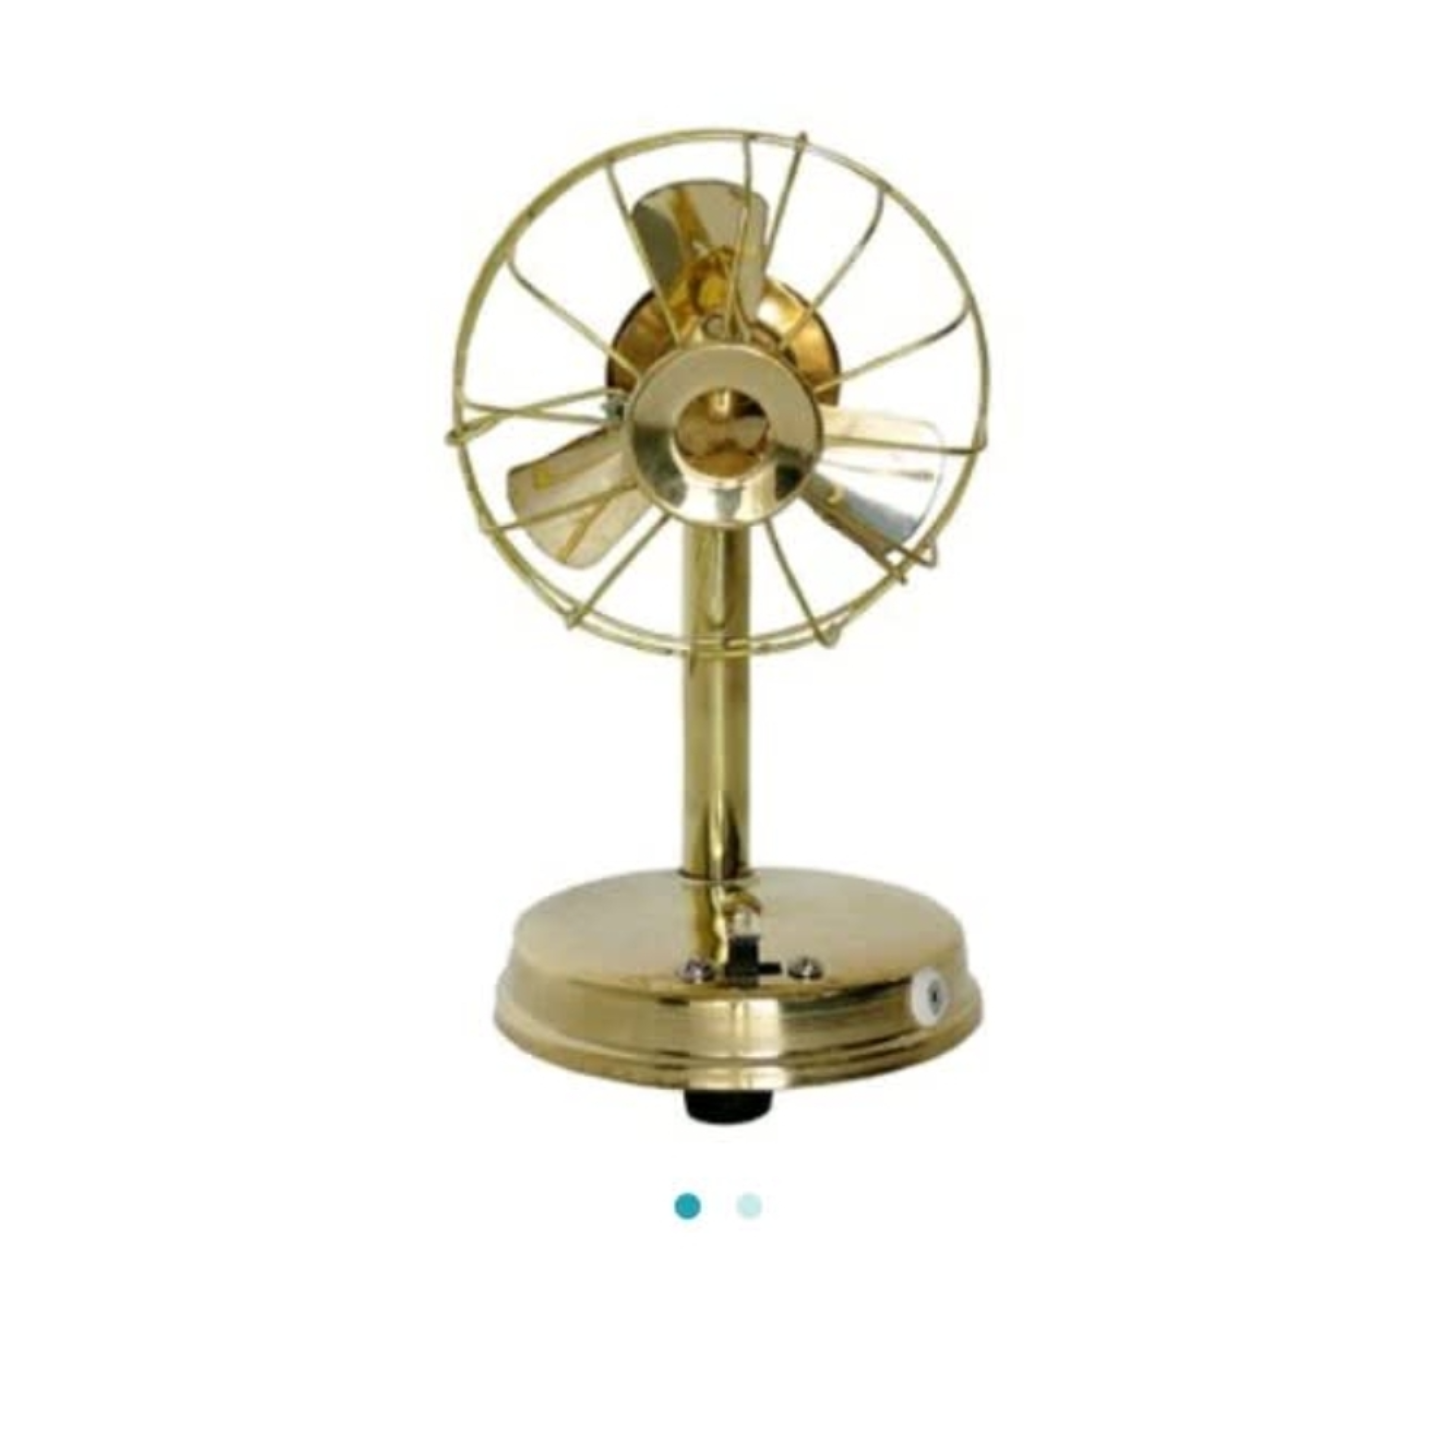 Brass Fan For Laddu Gopal And Children Playing Toy -4*4*7 Inch  (F009)